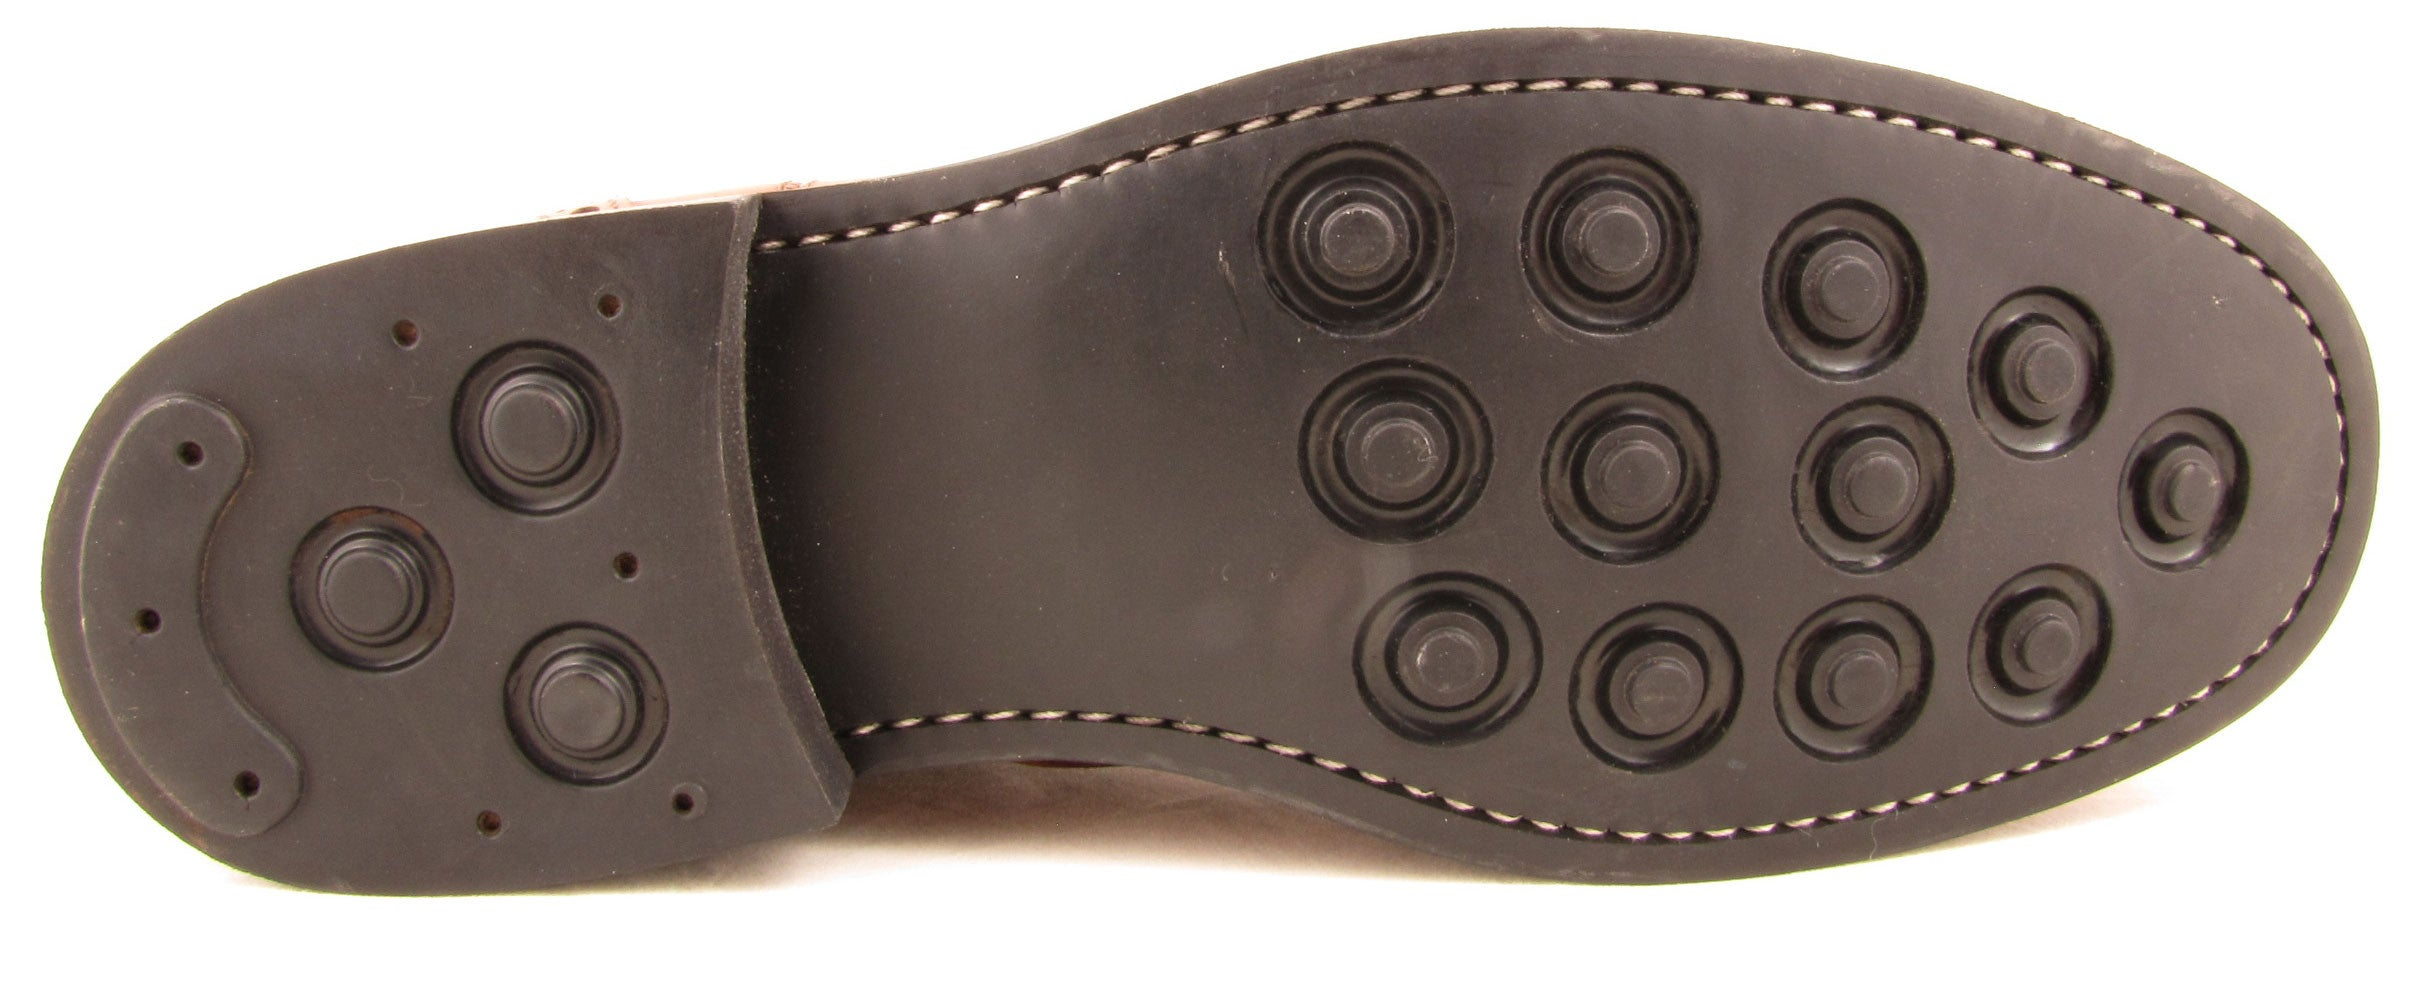 rubber studded sole offers great grip in wet and muddy conditions, designed to clear clogging dirt with a few scrapes on the doormat